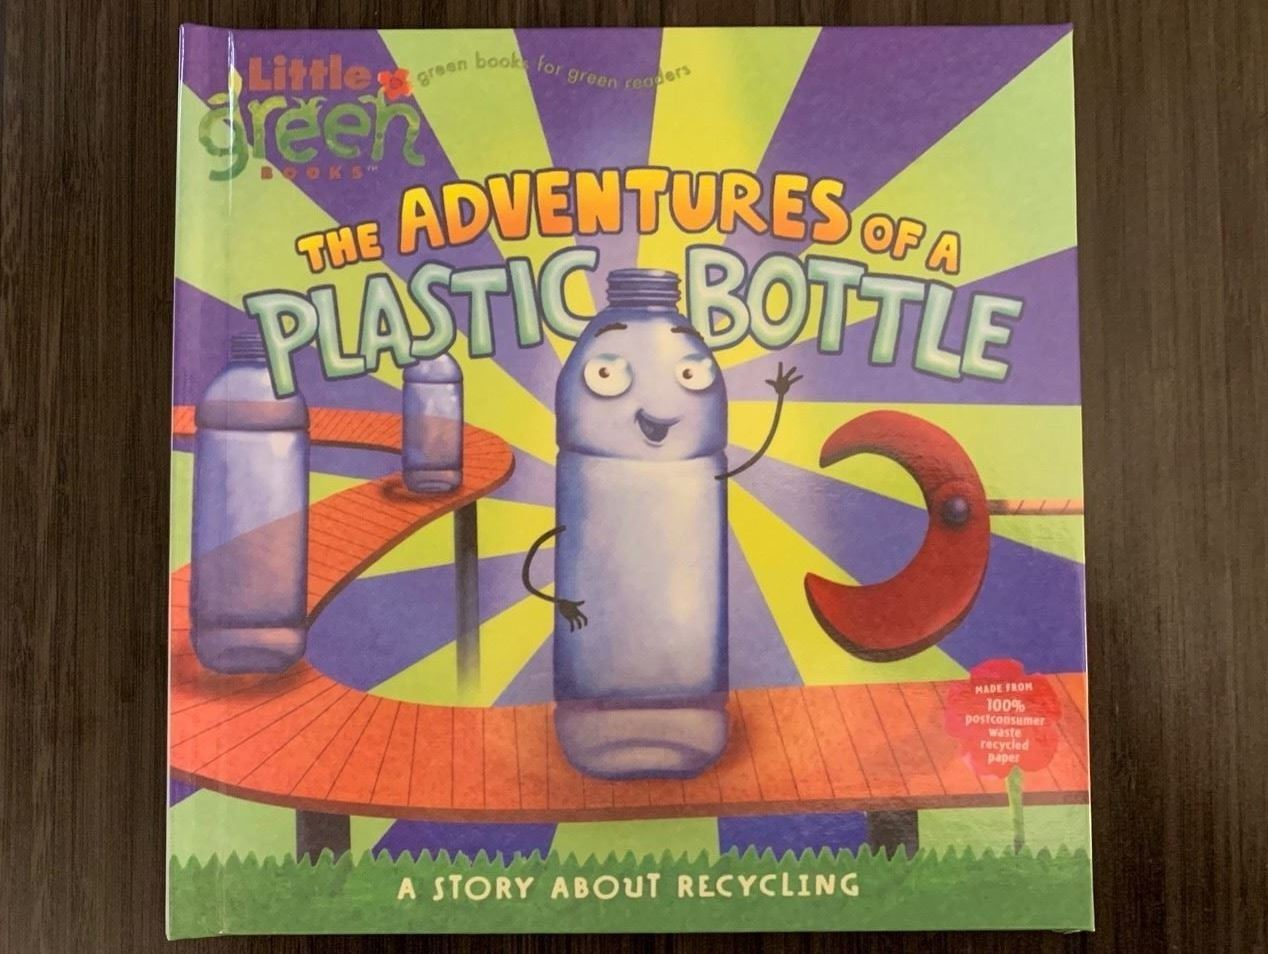 Book 20 - The Adventures of a Plastic Bottle